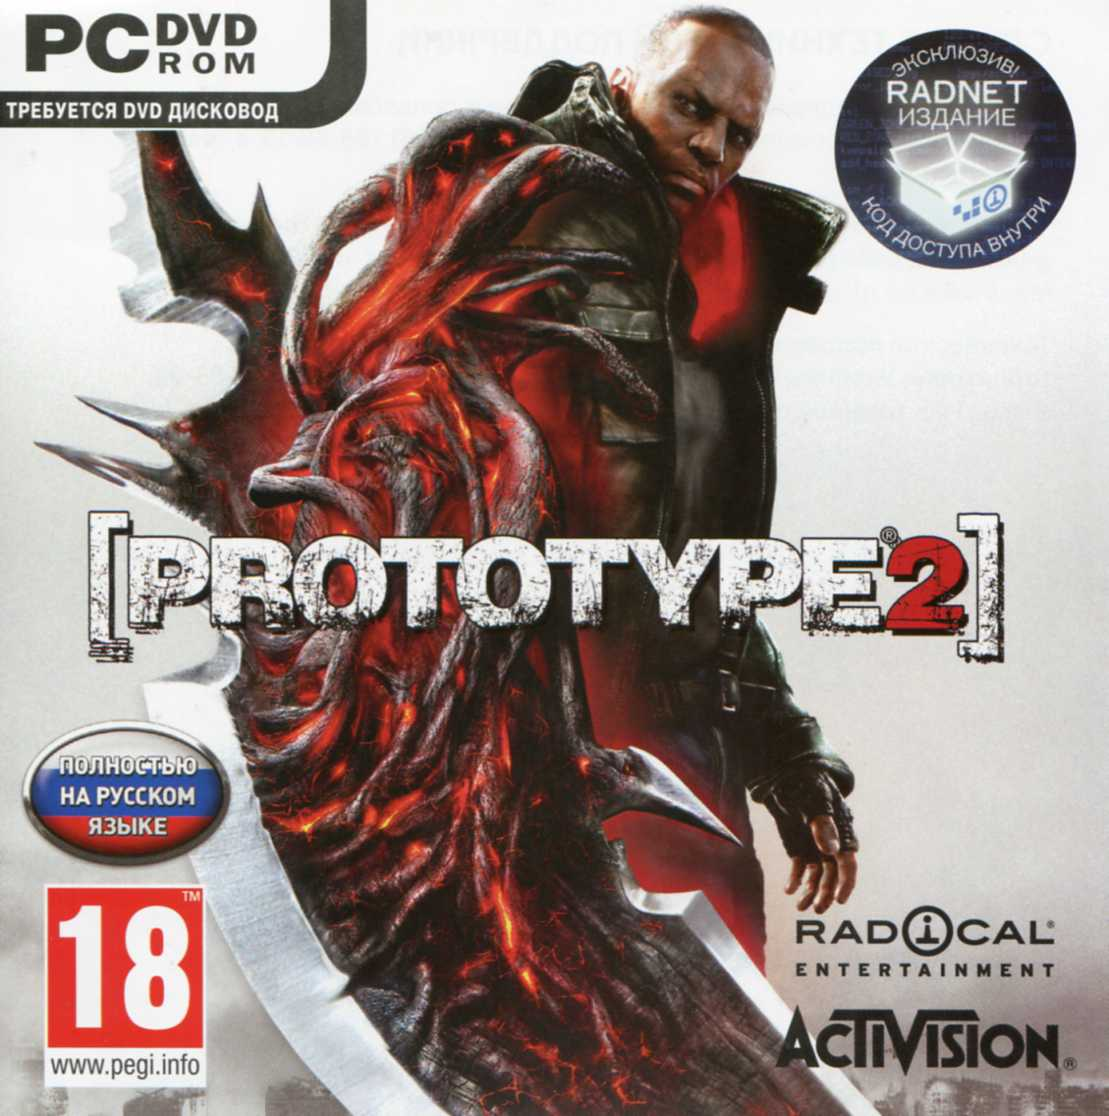 Prototype 2. Radnet edition (activation key in Steam)